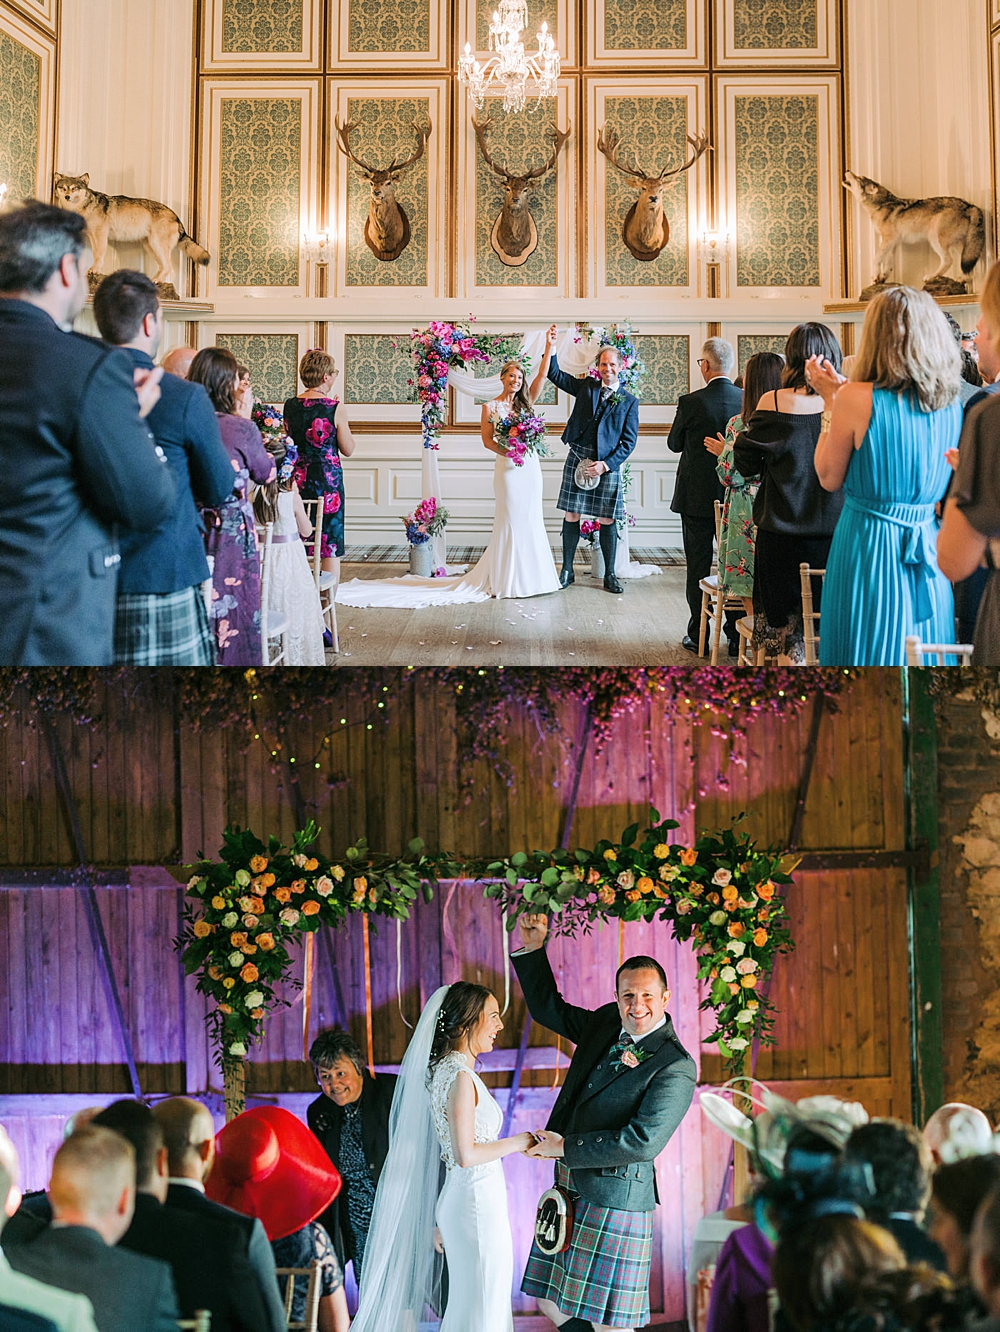 Special wedding moments 0031.jpg